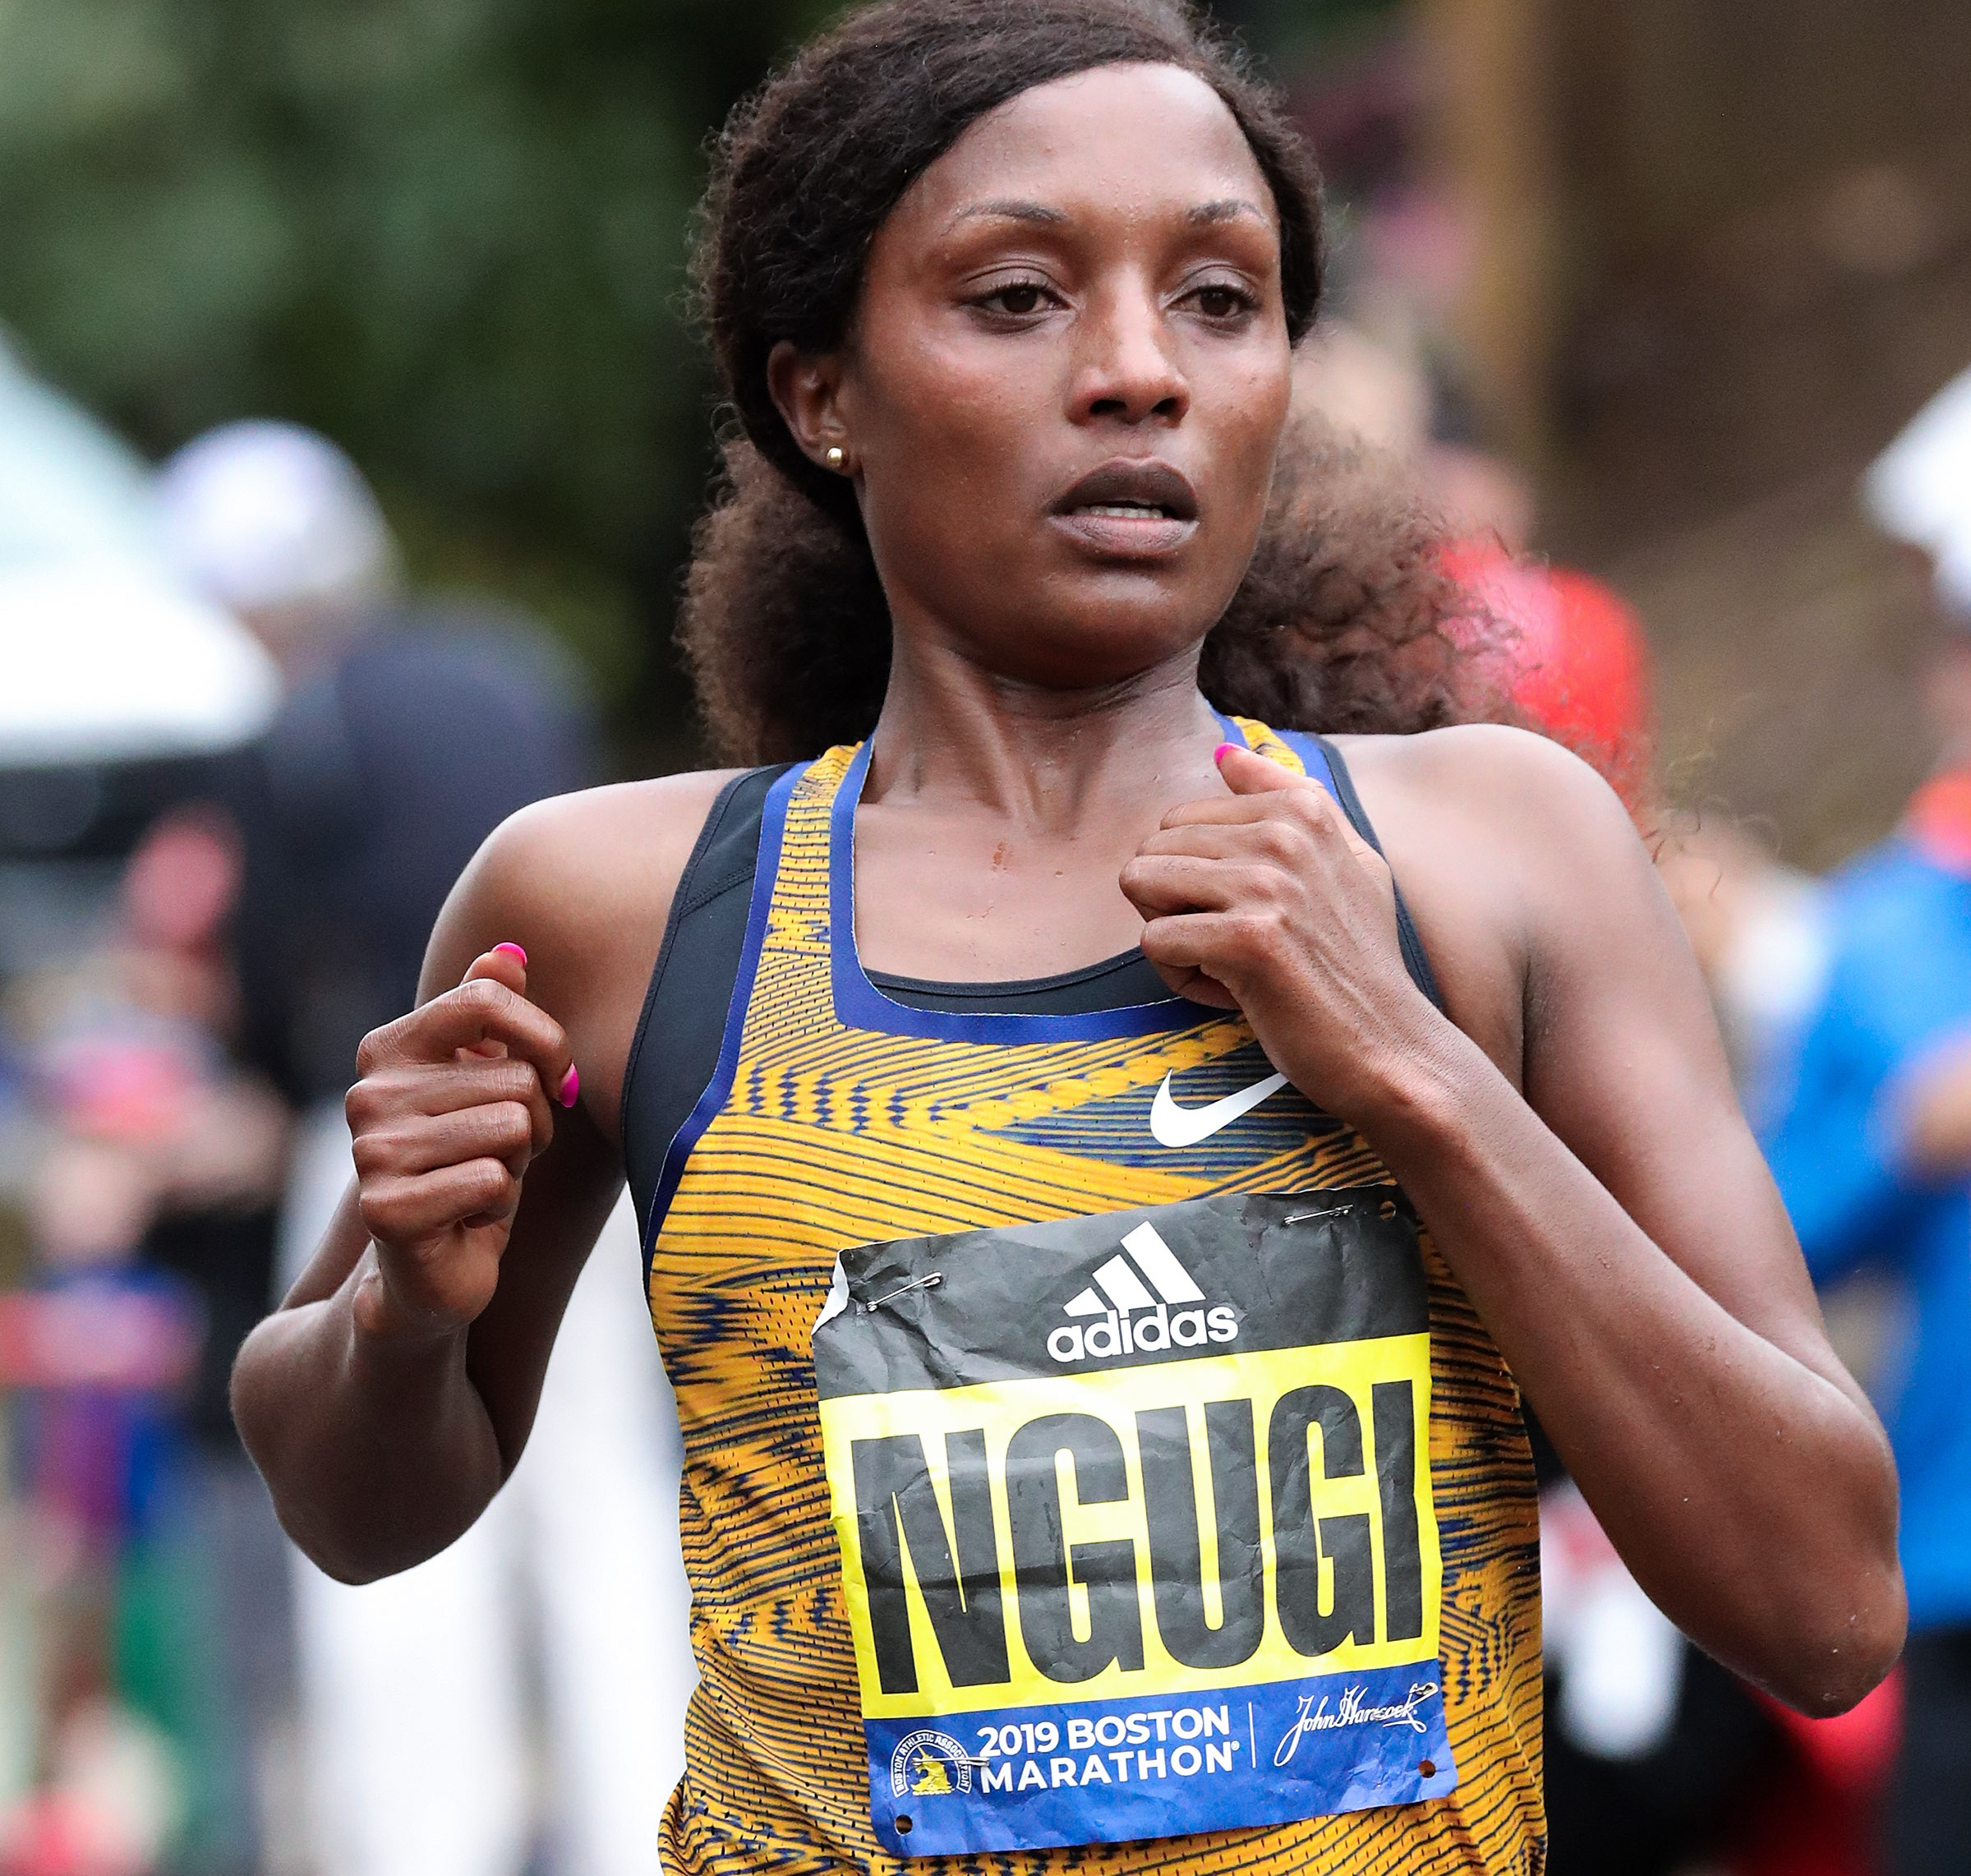 Mary Ngugi was seventh in 2:28:33 at the 2019 Boston Marathon, her debut at the distance.